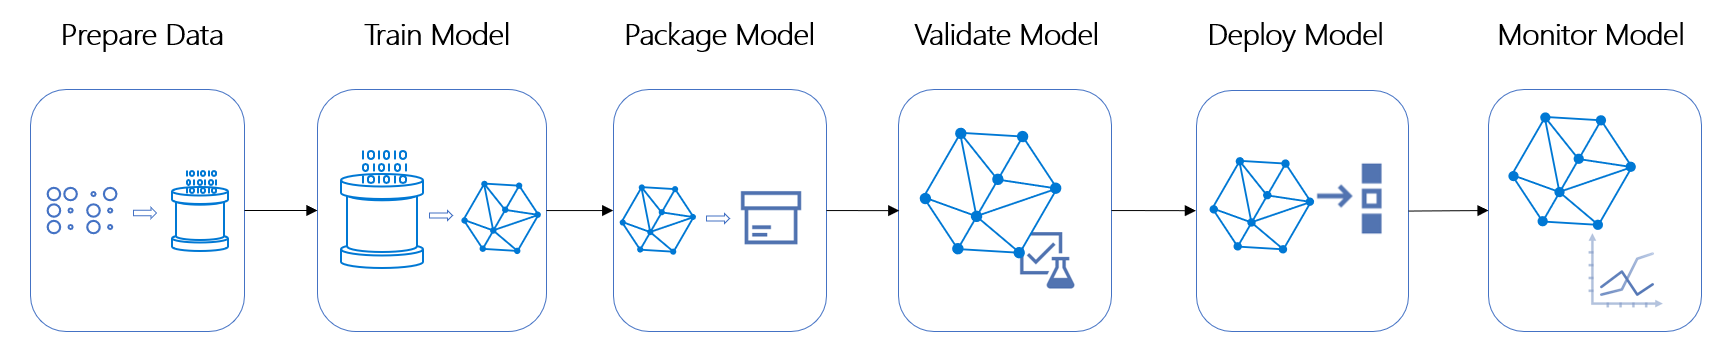 Machine learning pipelines in Azure Machine Learning